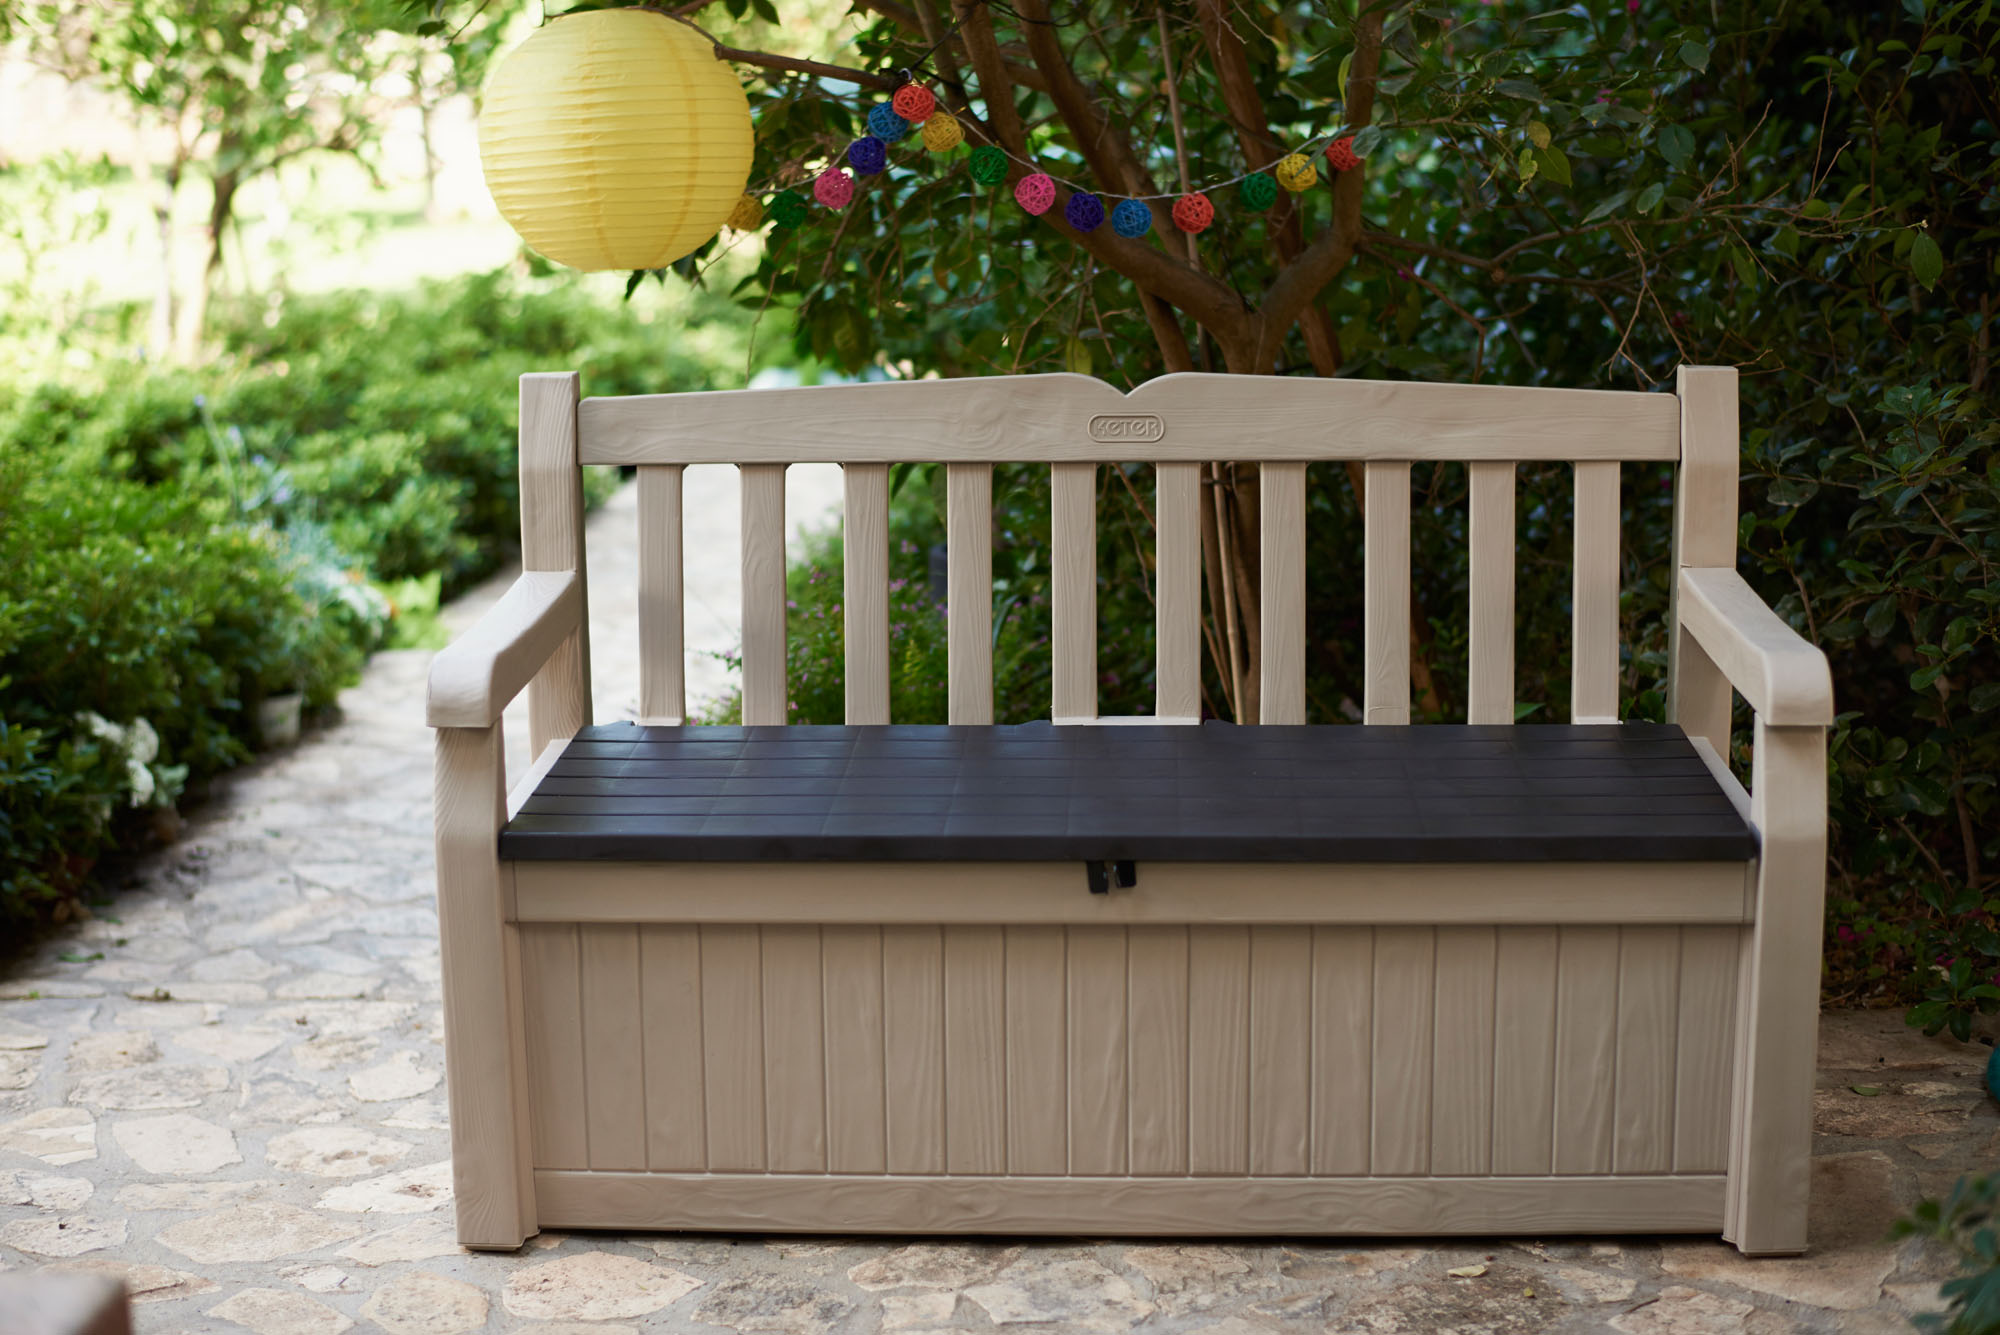 This 70-gallon bench is also on sale (Photo via Walmart)